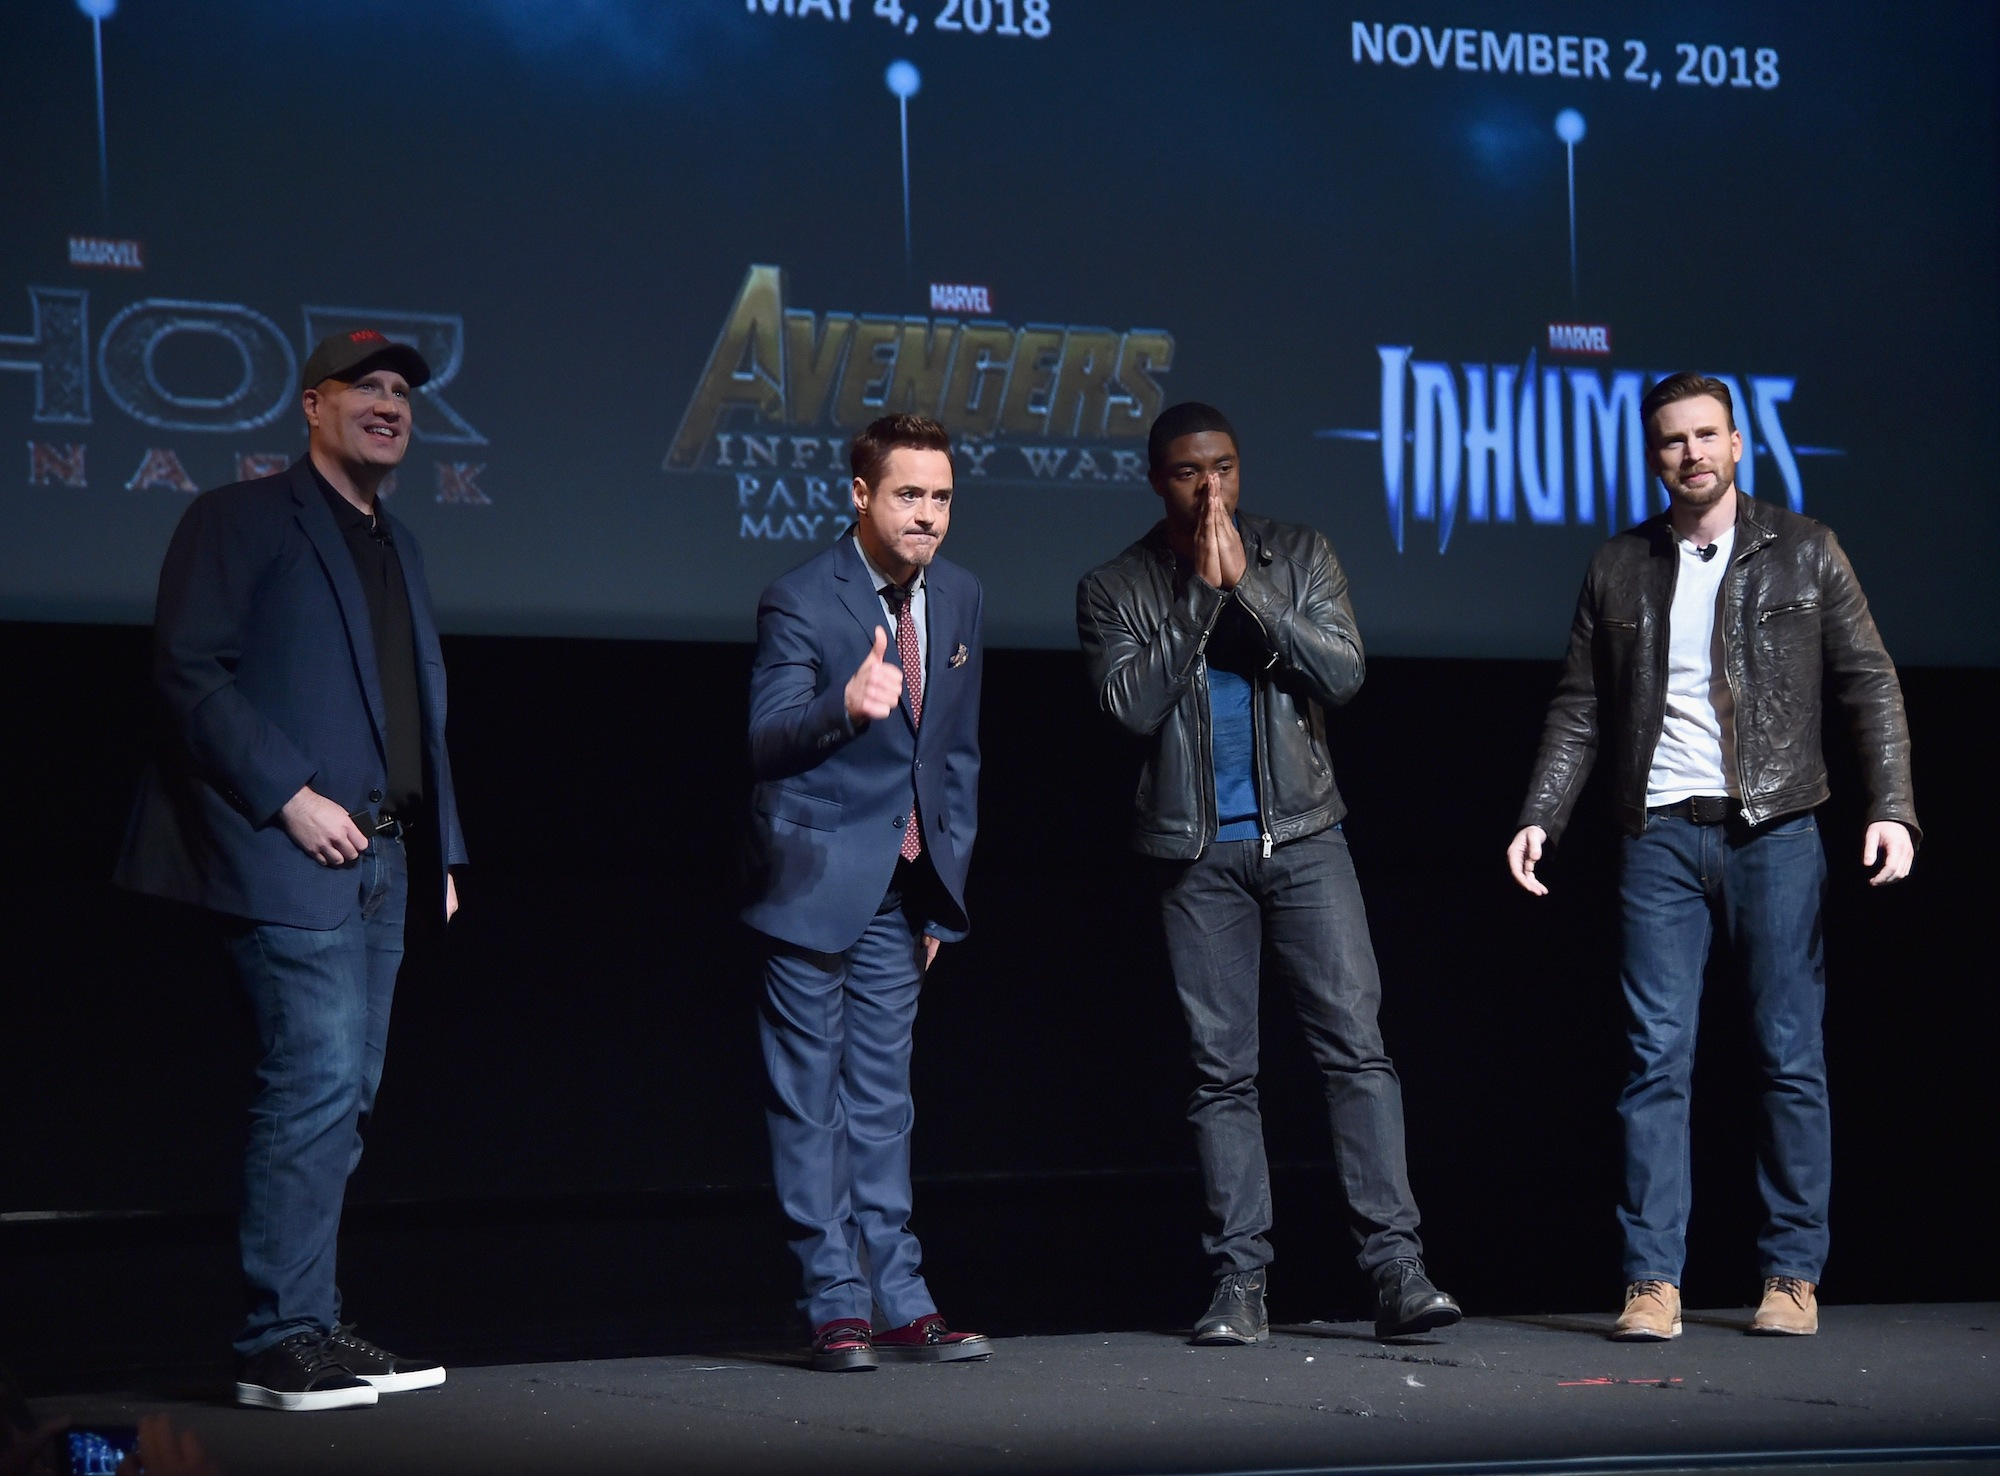 LOS ANGELES, CA - OCTOBER 28: (L-R) President of Marvel Studios Kevin Feige and actors Robert Downey Jr., Chadwick Boseman and Chris Evans onstage during Marvel Studios fan event at The El Capitan Theatre on October 28, 2014 in Los Angeles, California. (Photo by Alberto E. Rodriguez/Getty Images for Disney) *** Local Caption *** Kevin Feige;Robert Downey Jr.;Chadwick Boseman;Chris Evans